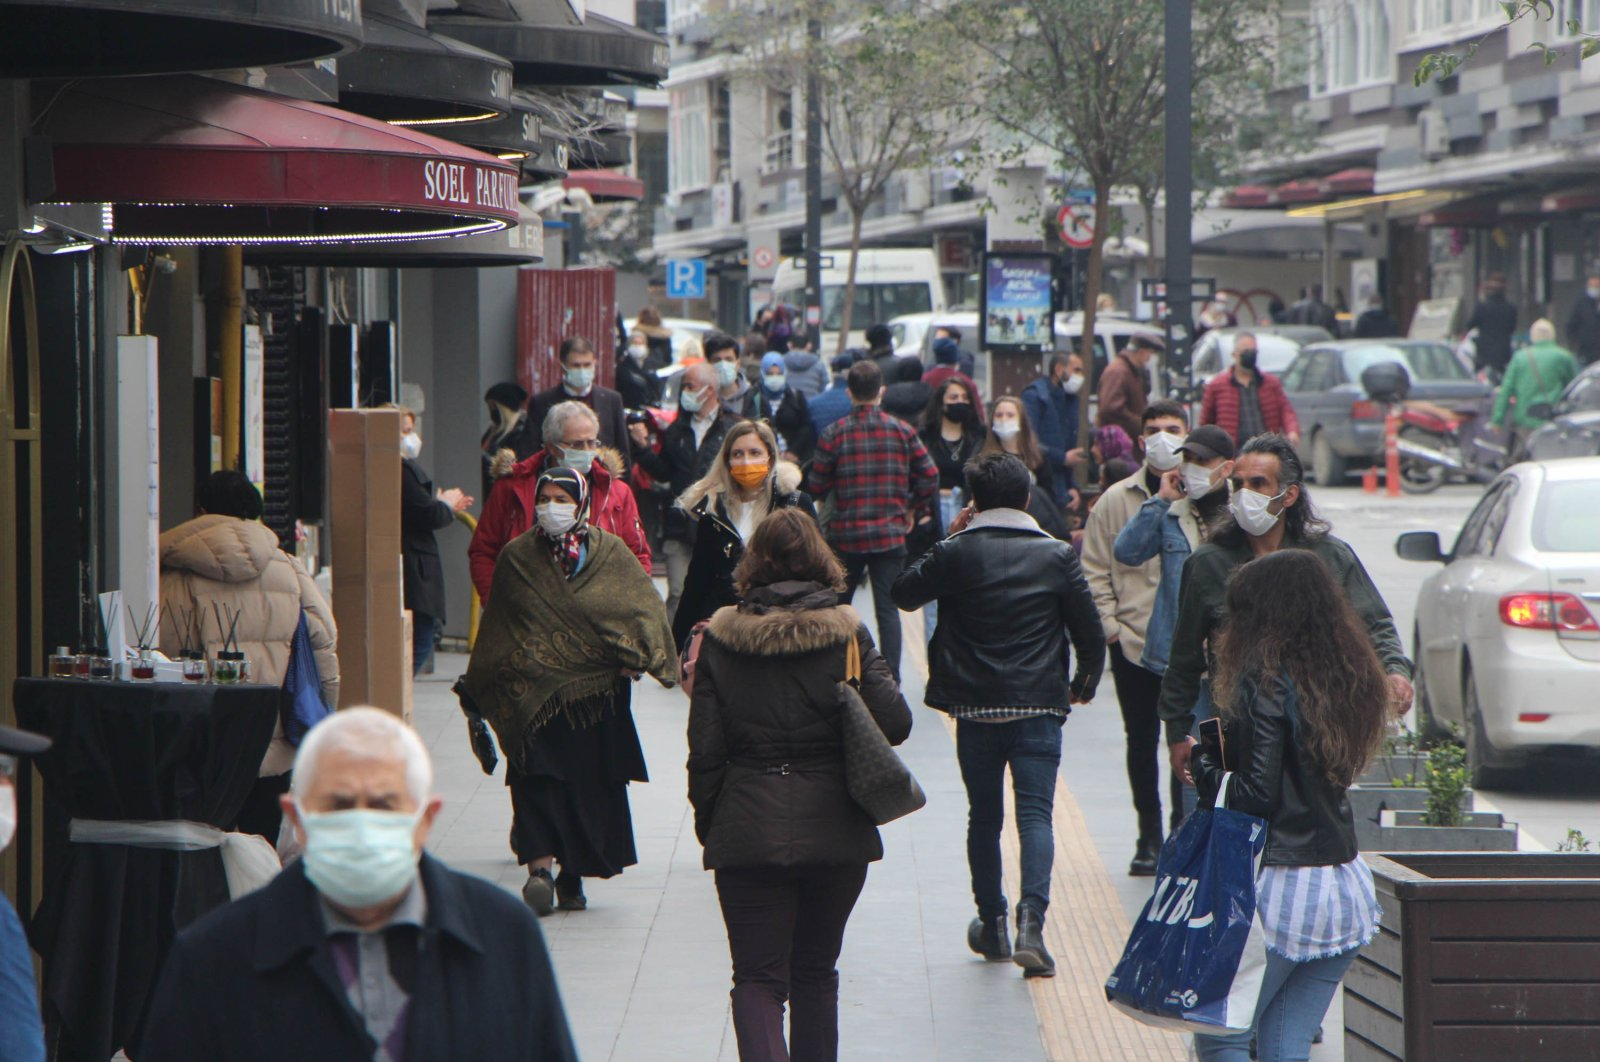 People wearing protective masks walk on a crowded street in Samsun, northern Turkey, April 6, 2021. (DHA PHOTO)